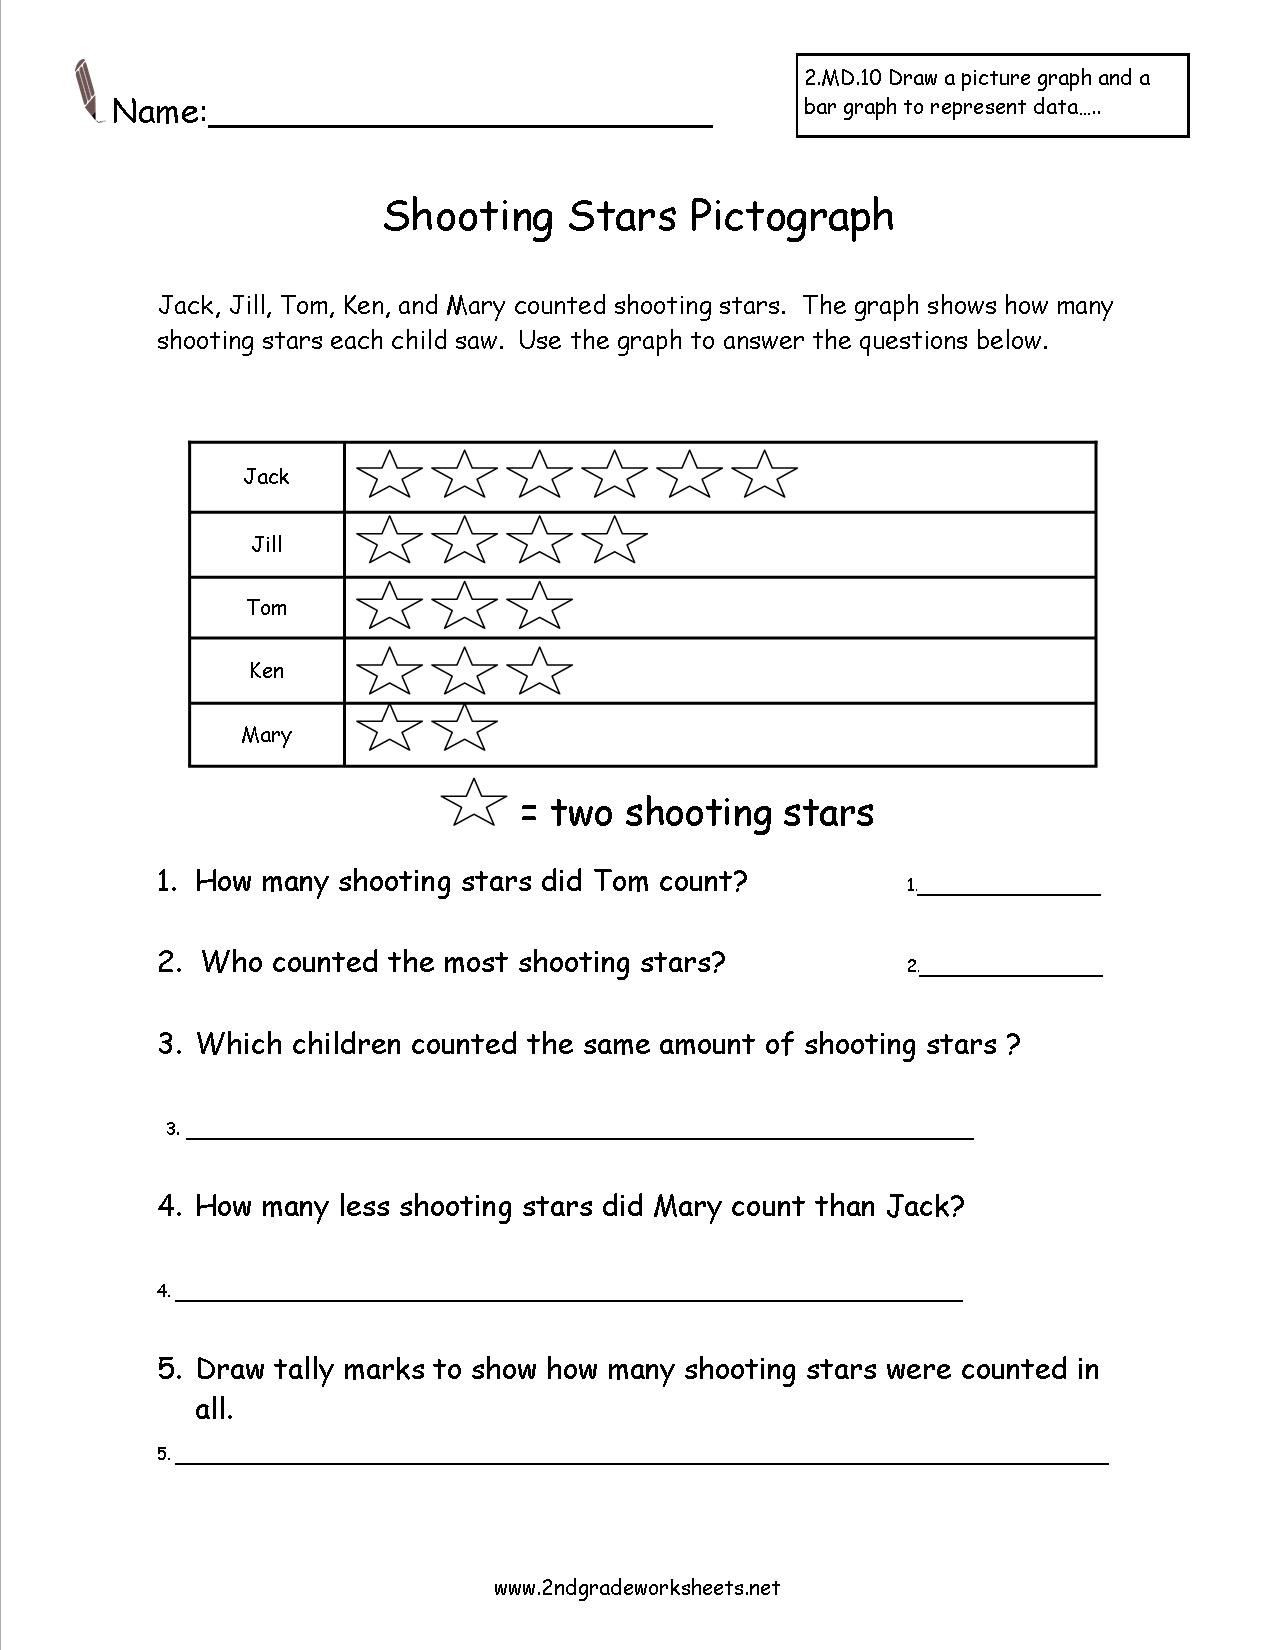 Picture Graph Worksheets 2nd Grade Shooting Stars Pictograph Worksheet